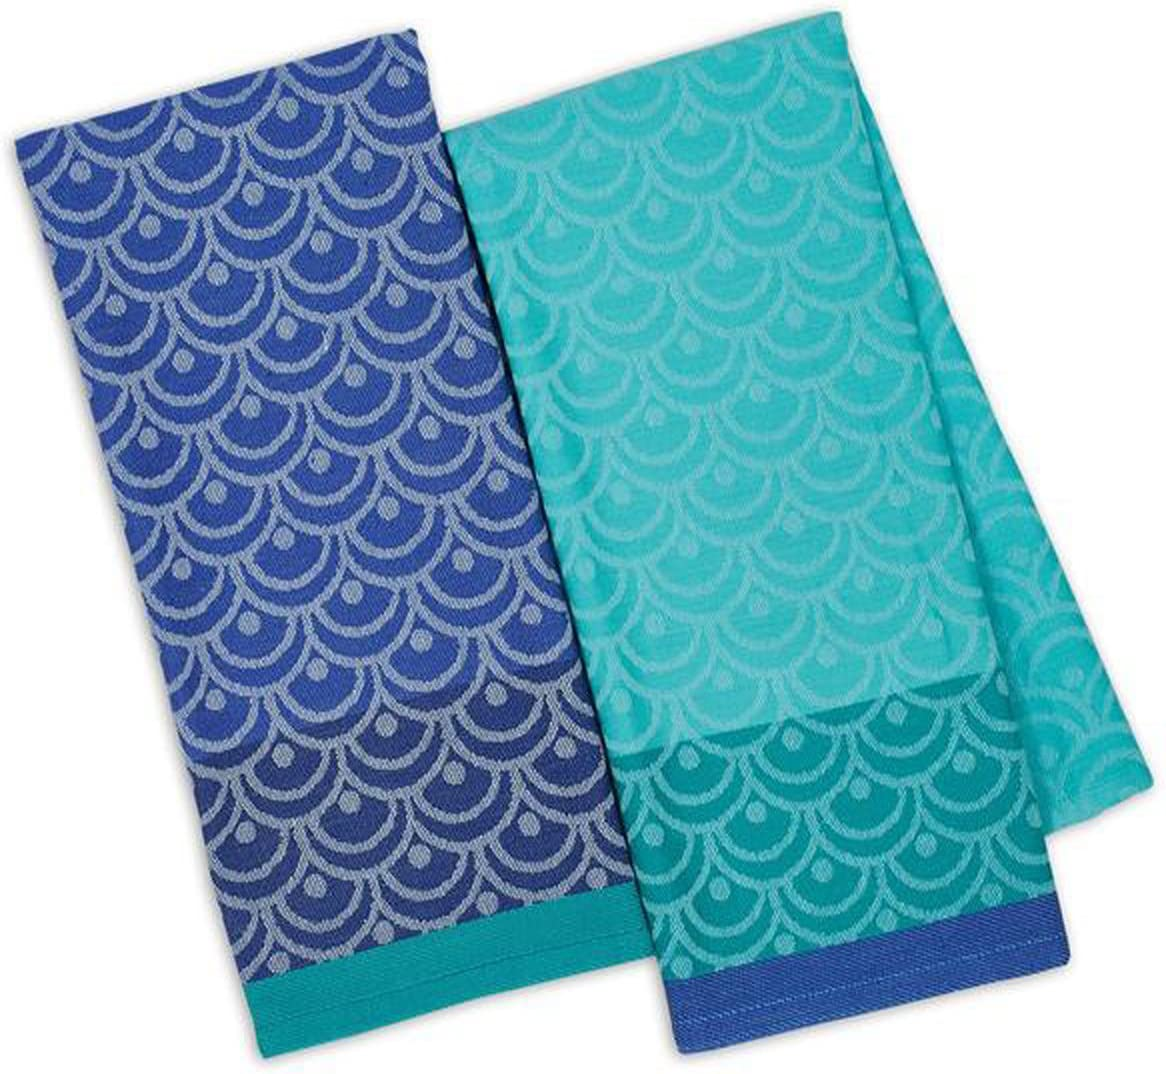 Design Imports Blue Santorini Cotton Table Linens, Dishtowels 18-Inch by 28-Inch, Set of 2, Scallops Jacquard: Home & Kitchen